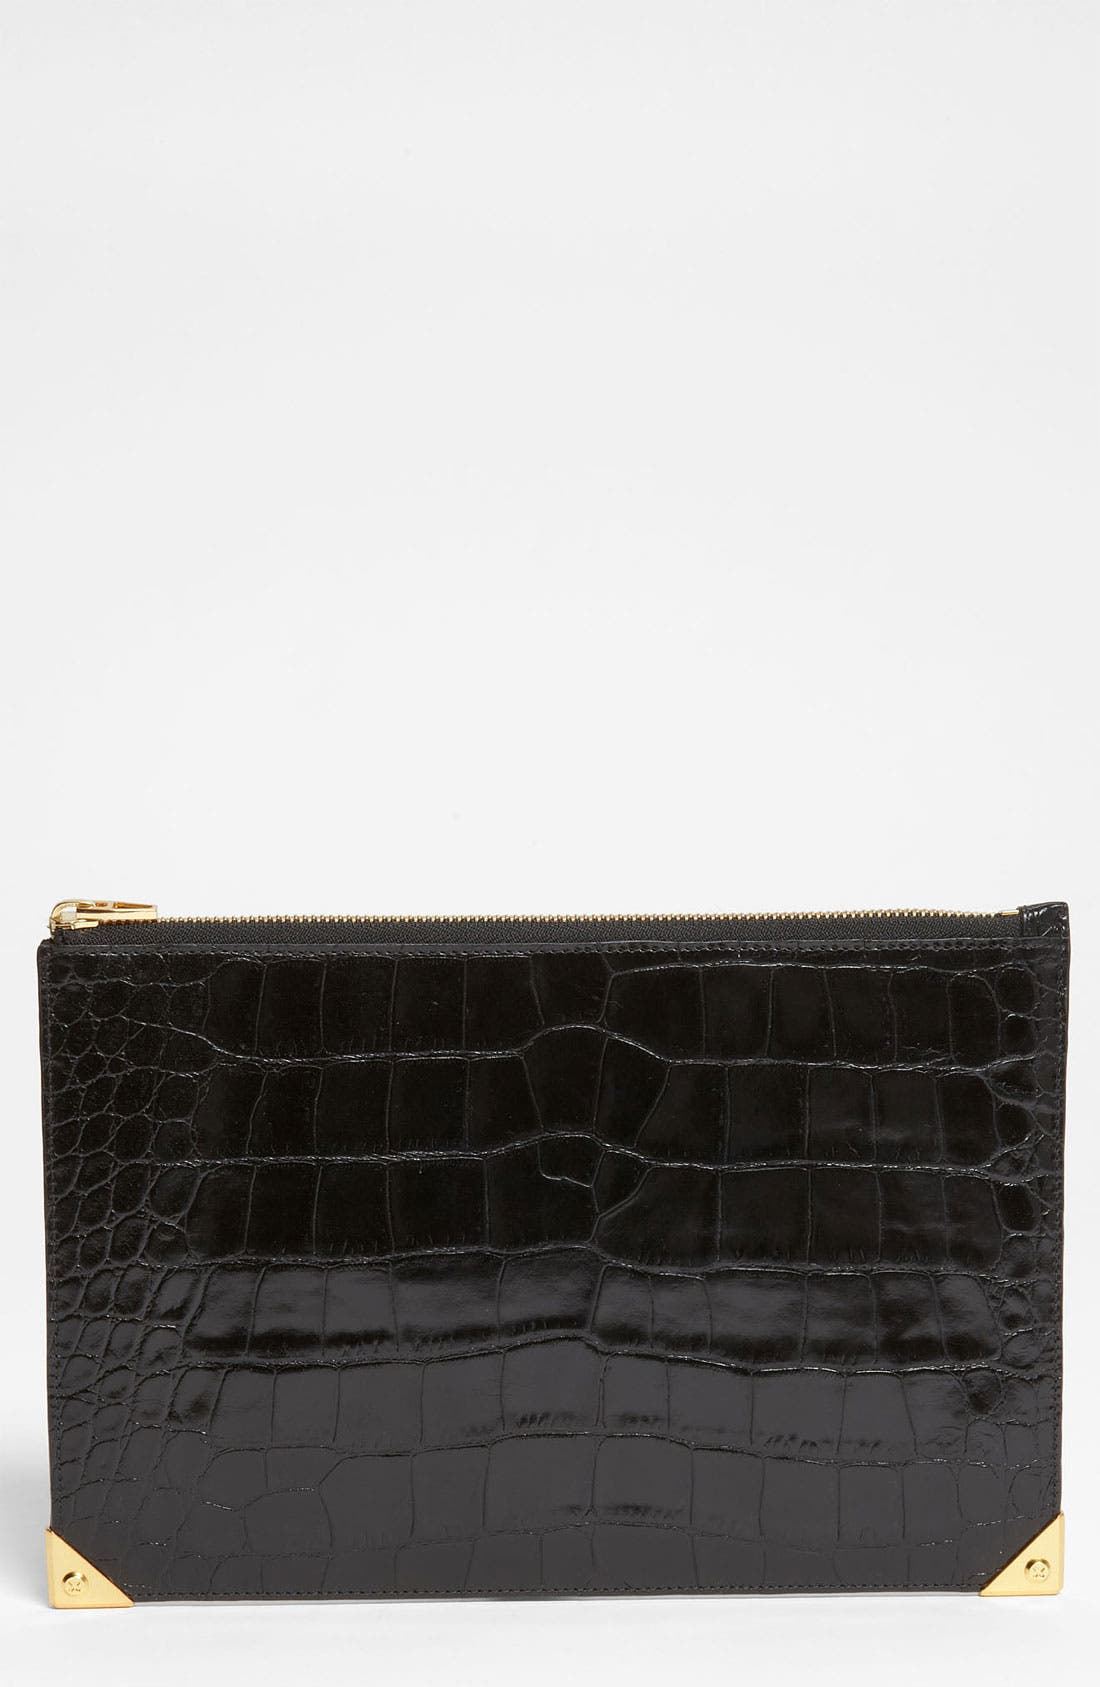 Alternate Image 1 Selected - Alexander Wang 'Prisma' Embossed Leather Clutch